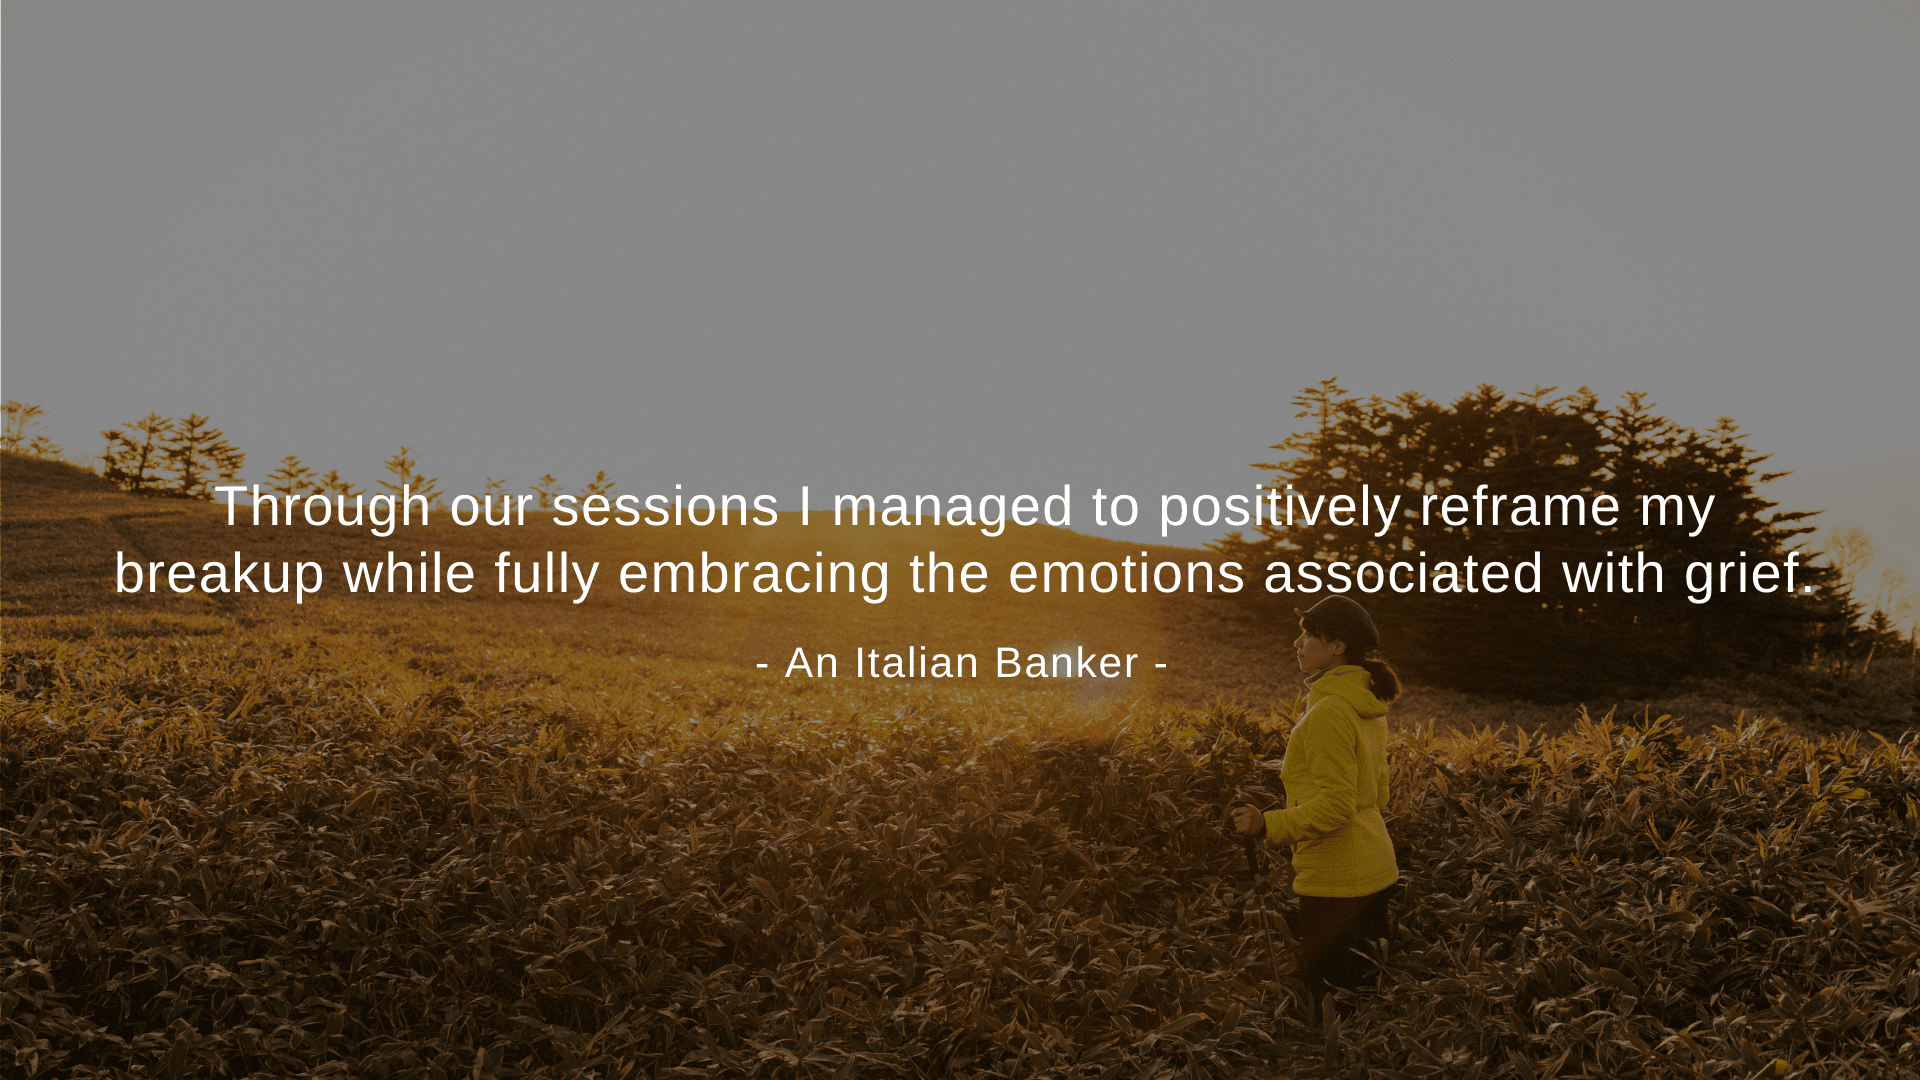 """Through our sessions I managed to positively reframe my breakup while fully embracing the emotions associated with grief."" An Italian Banker"